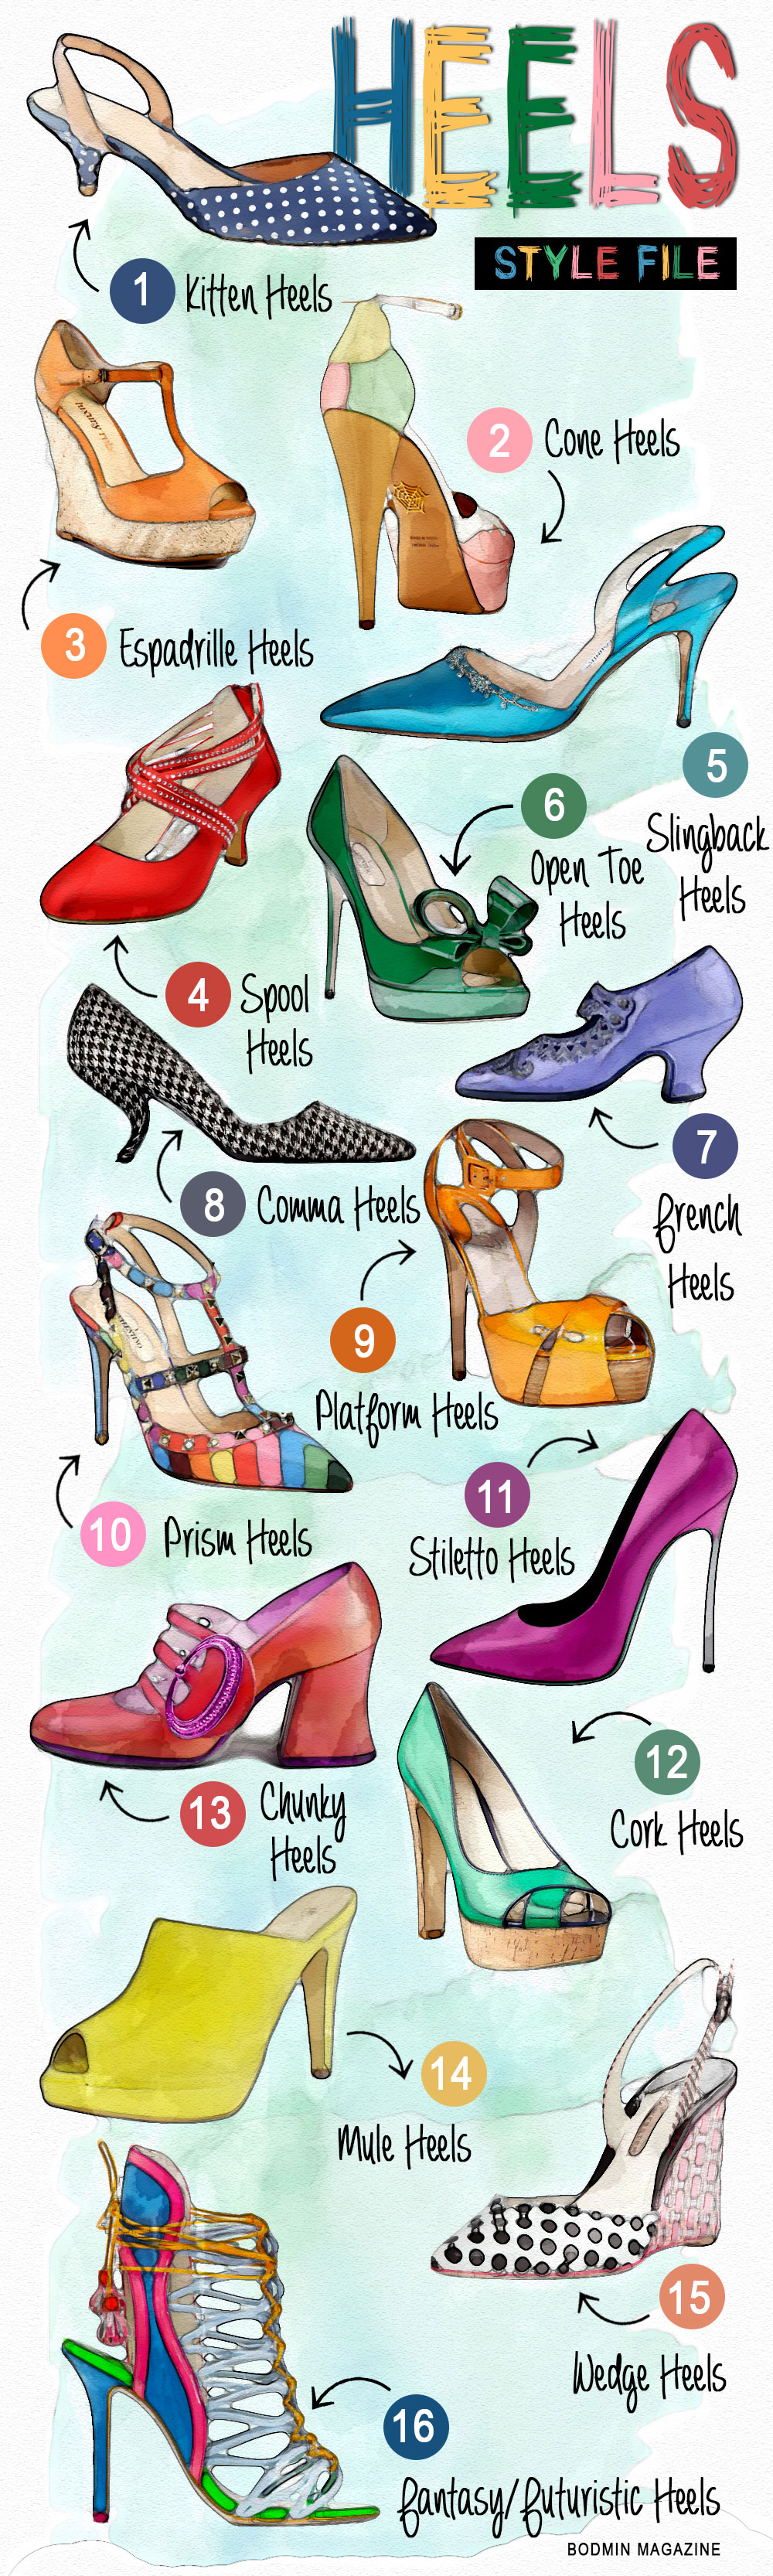 http://bodminmagazine.com/wp-content/uploads/2016/03/Complete-Guide-To-Different-Styles-Of-Shoe-Heels.jpg